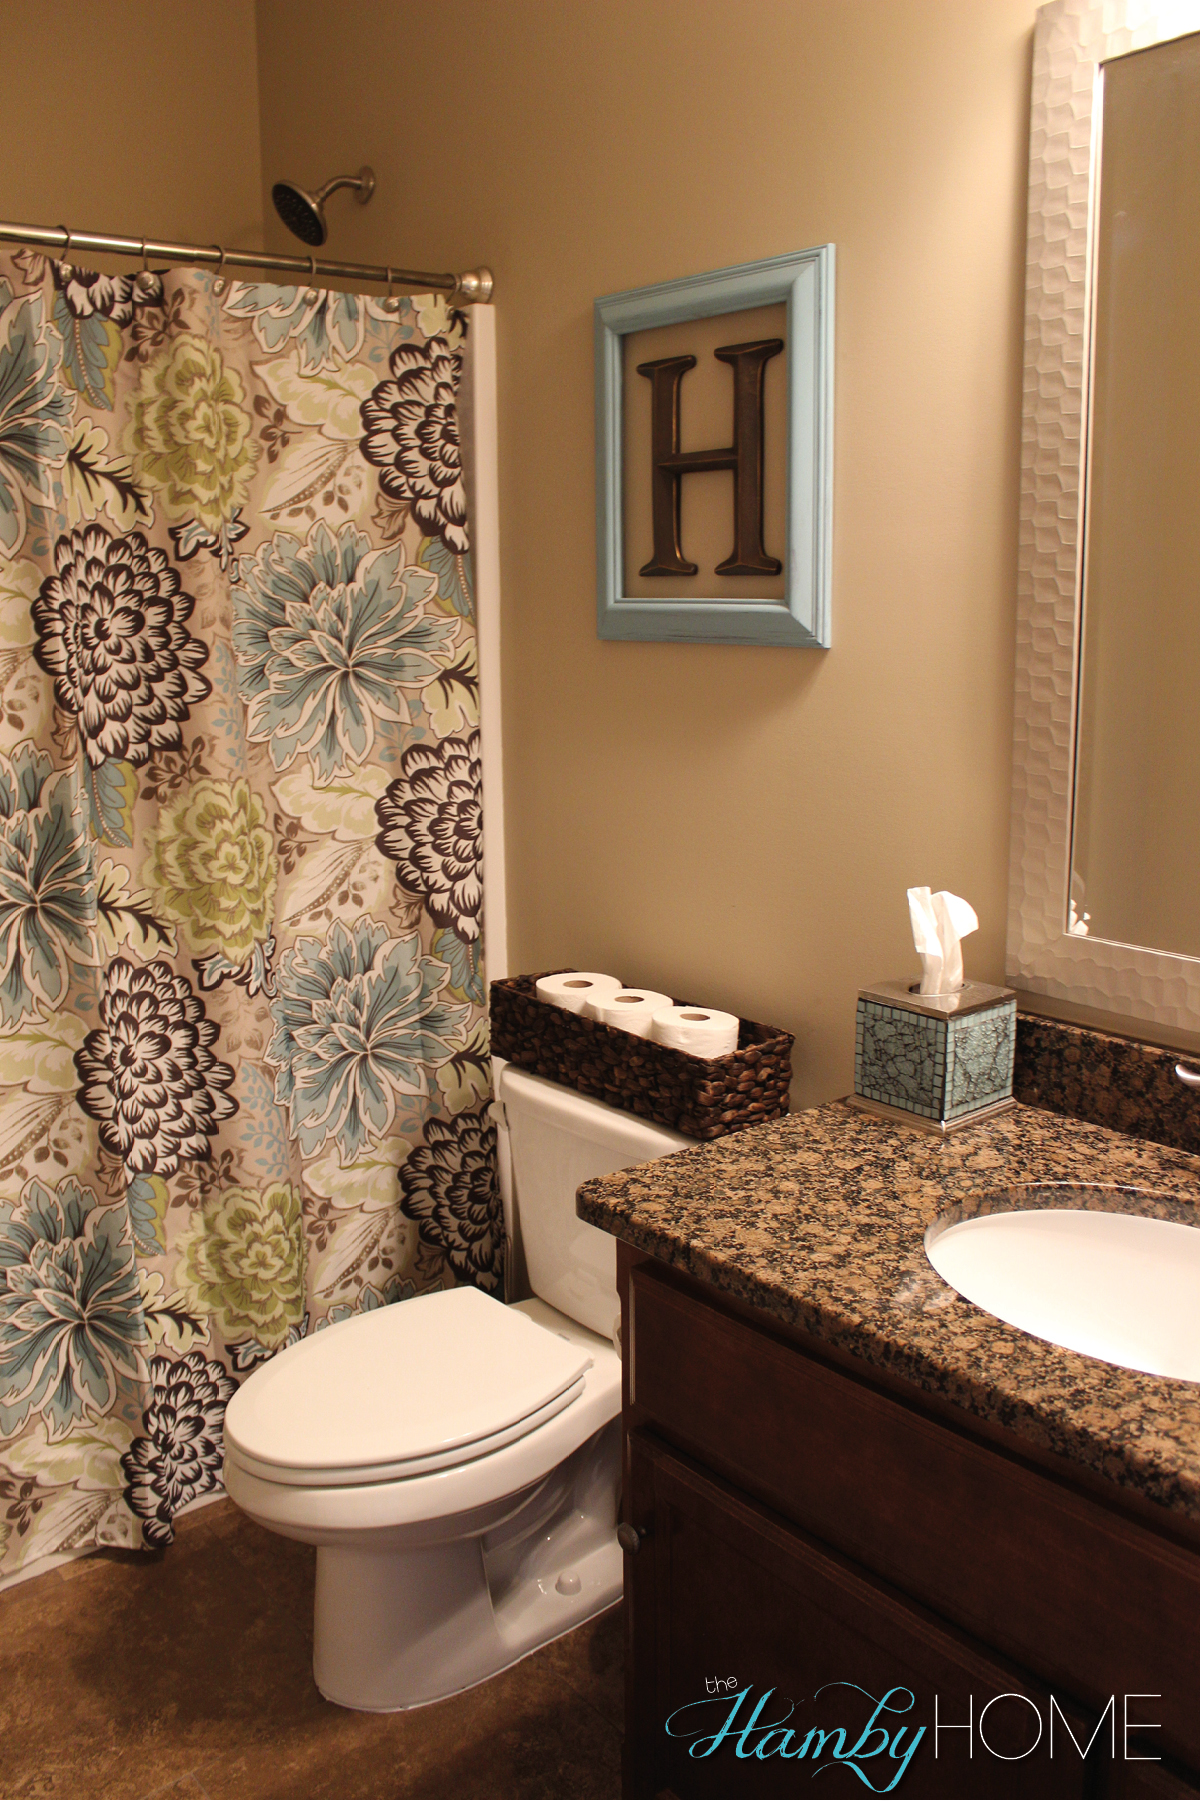 Tgif house tour guest bathroom the hamby home - Images of bathroom decoration ...